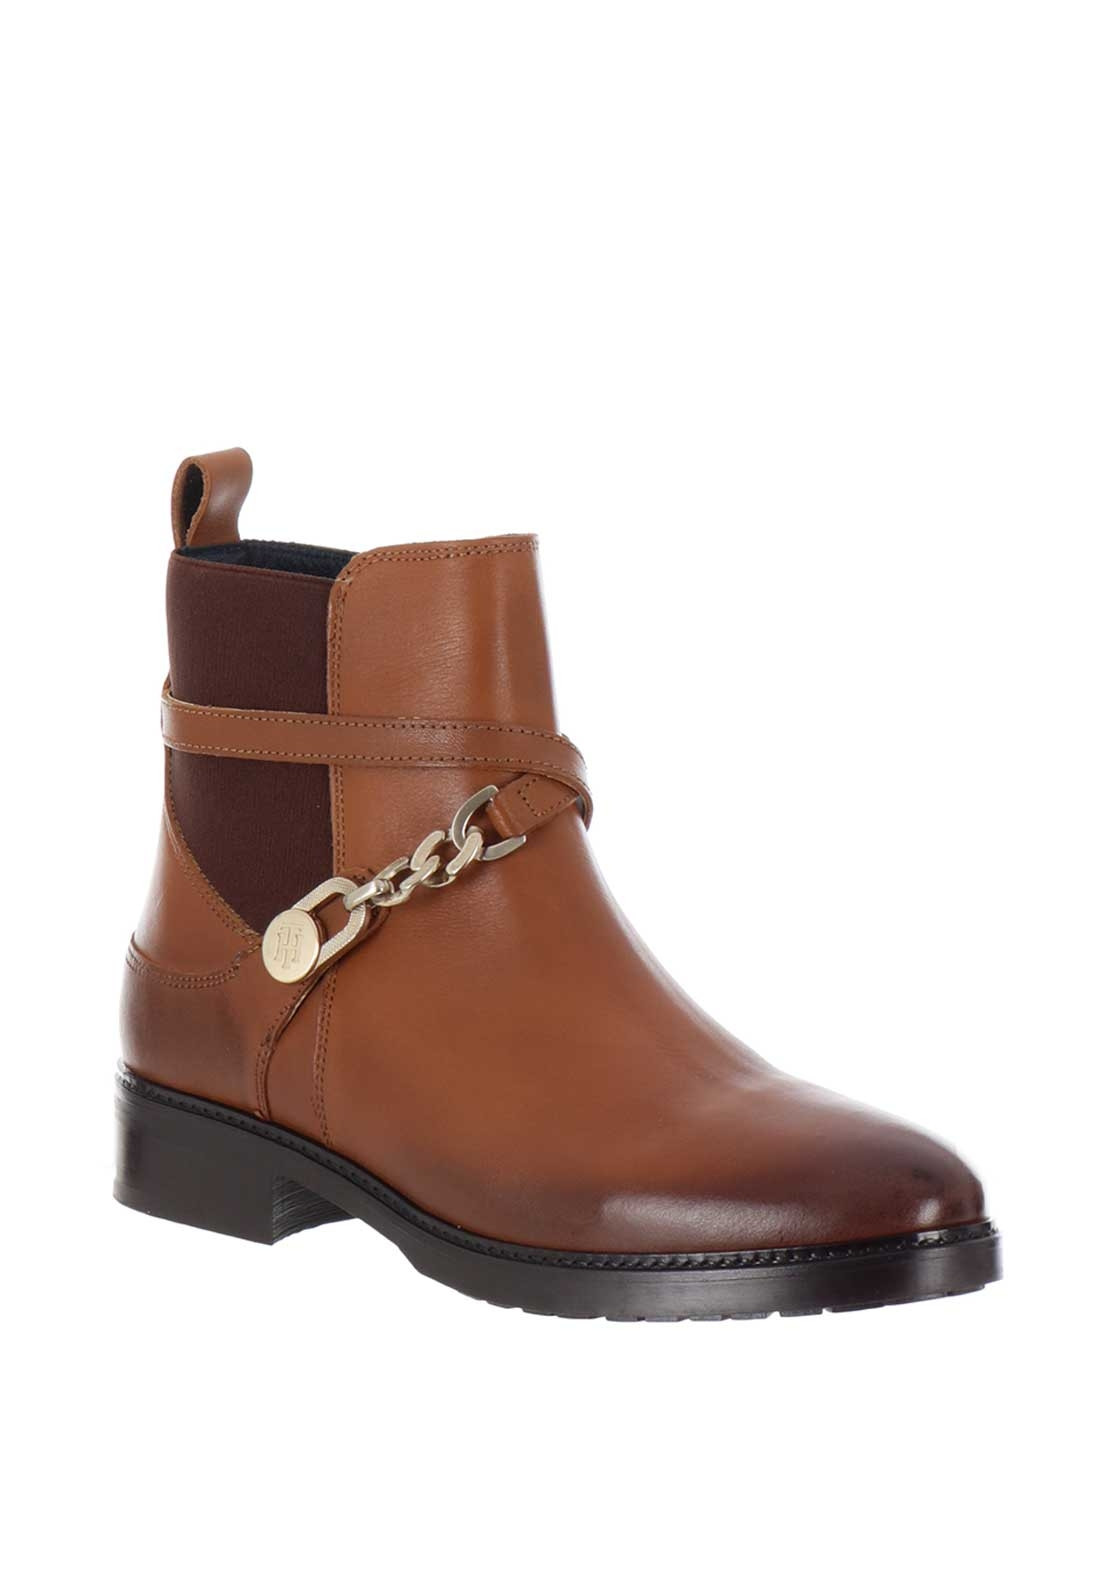 9d0a2042caab1 Tommy hilfiger womens chain chelsea boots tan mcelhinneys jpg 1110x1585 Boots  tommy hilfiger women